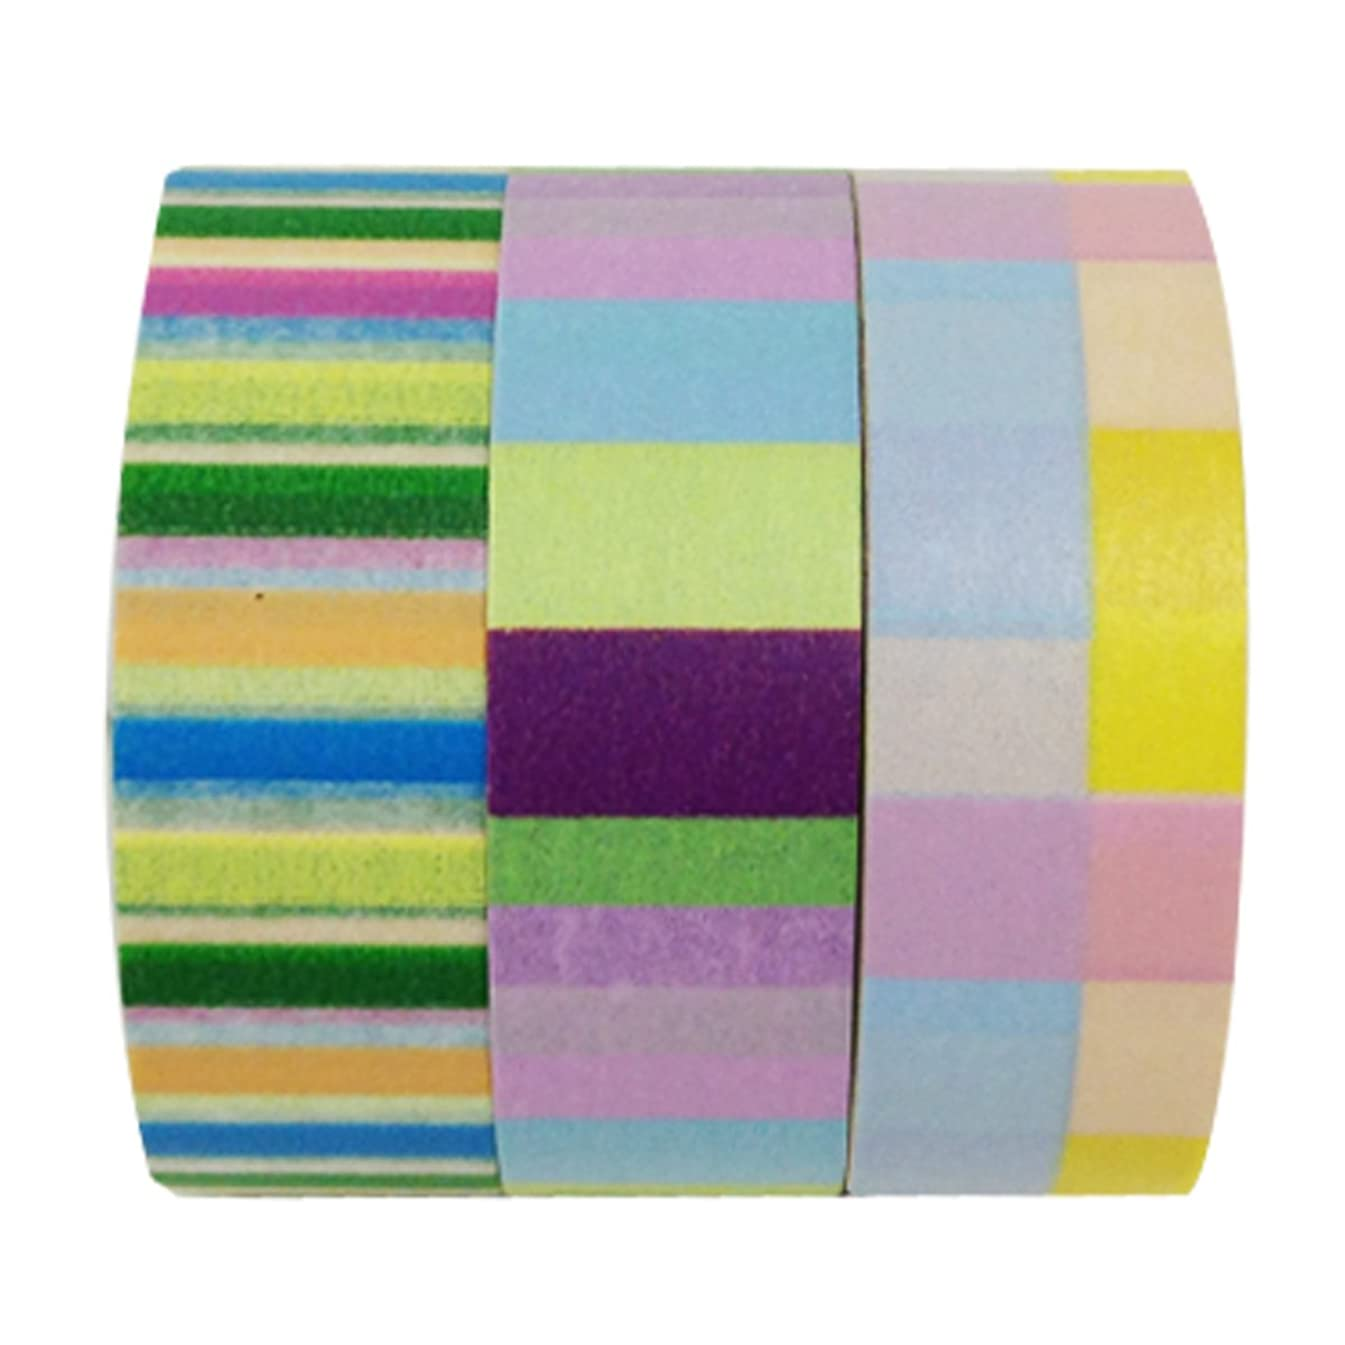 Wrapables Three of Us Washi Masking Tape, 10m by 15mm, Set of 3